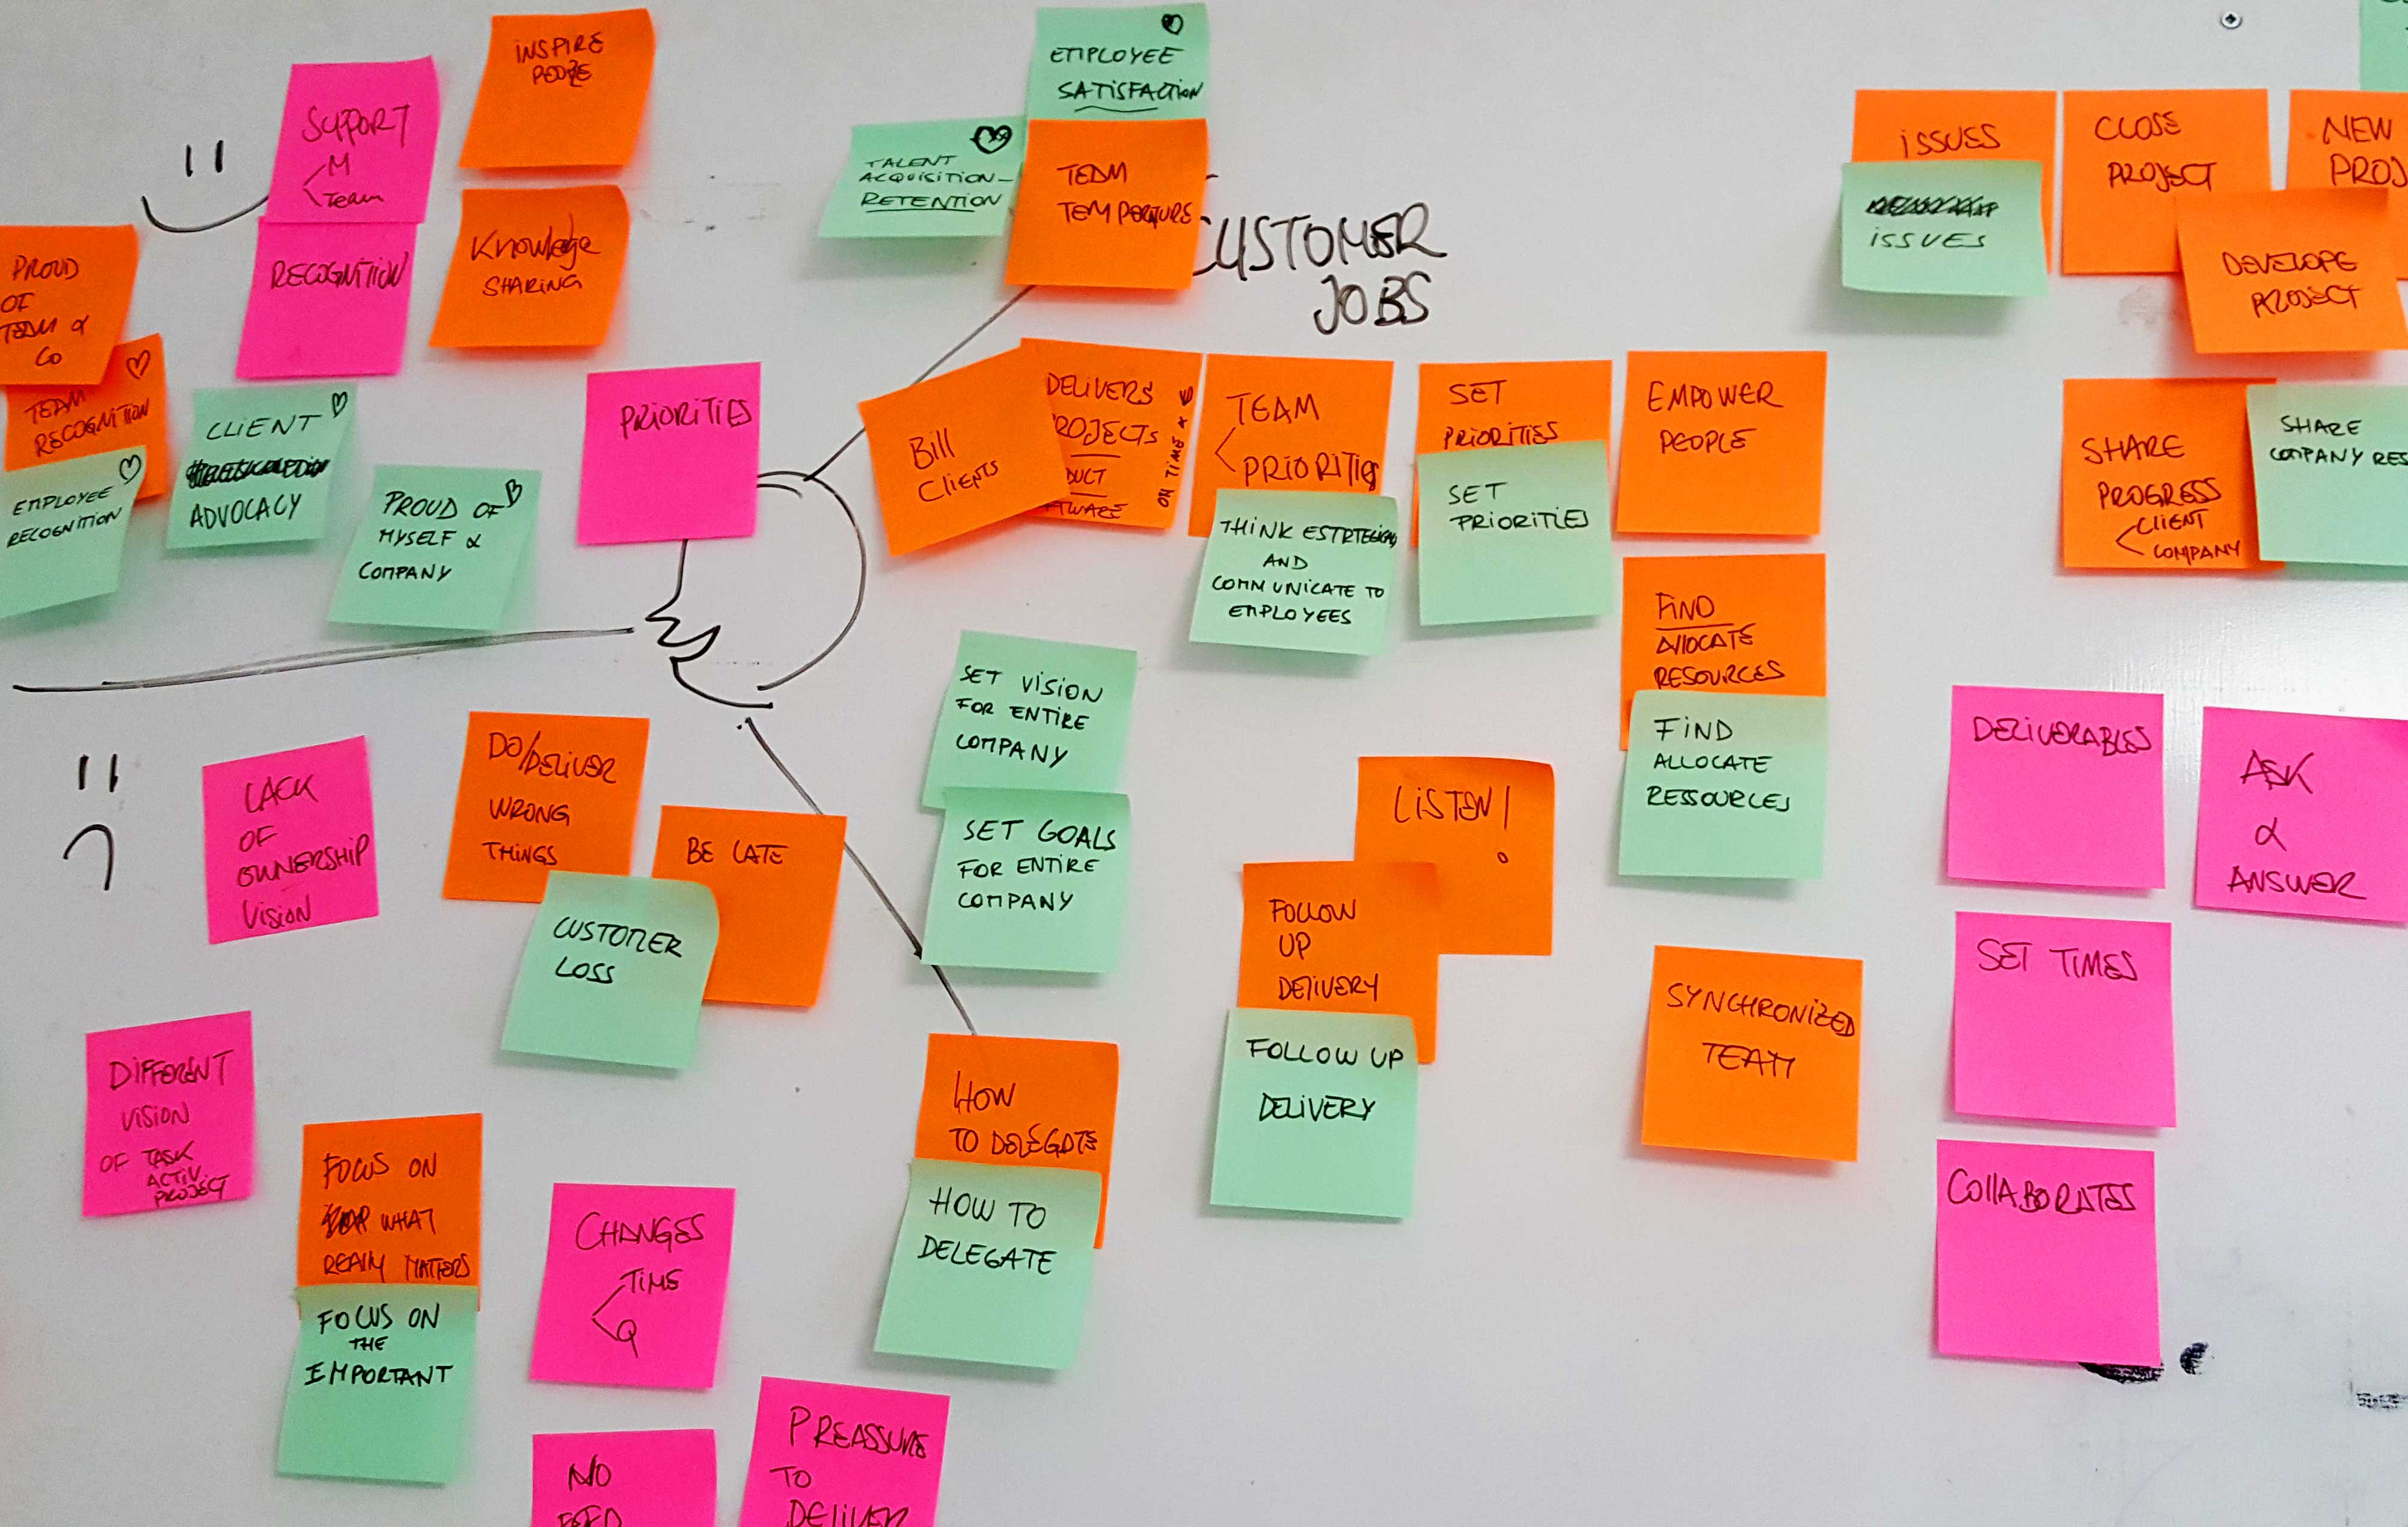 Design sprint tribescale ux